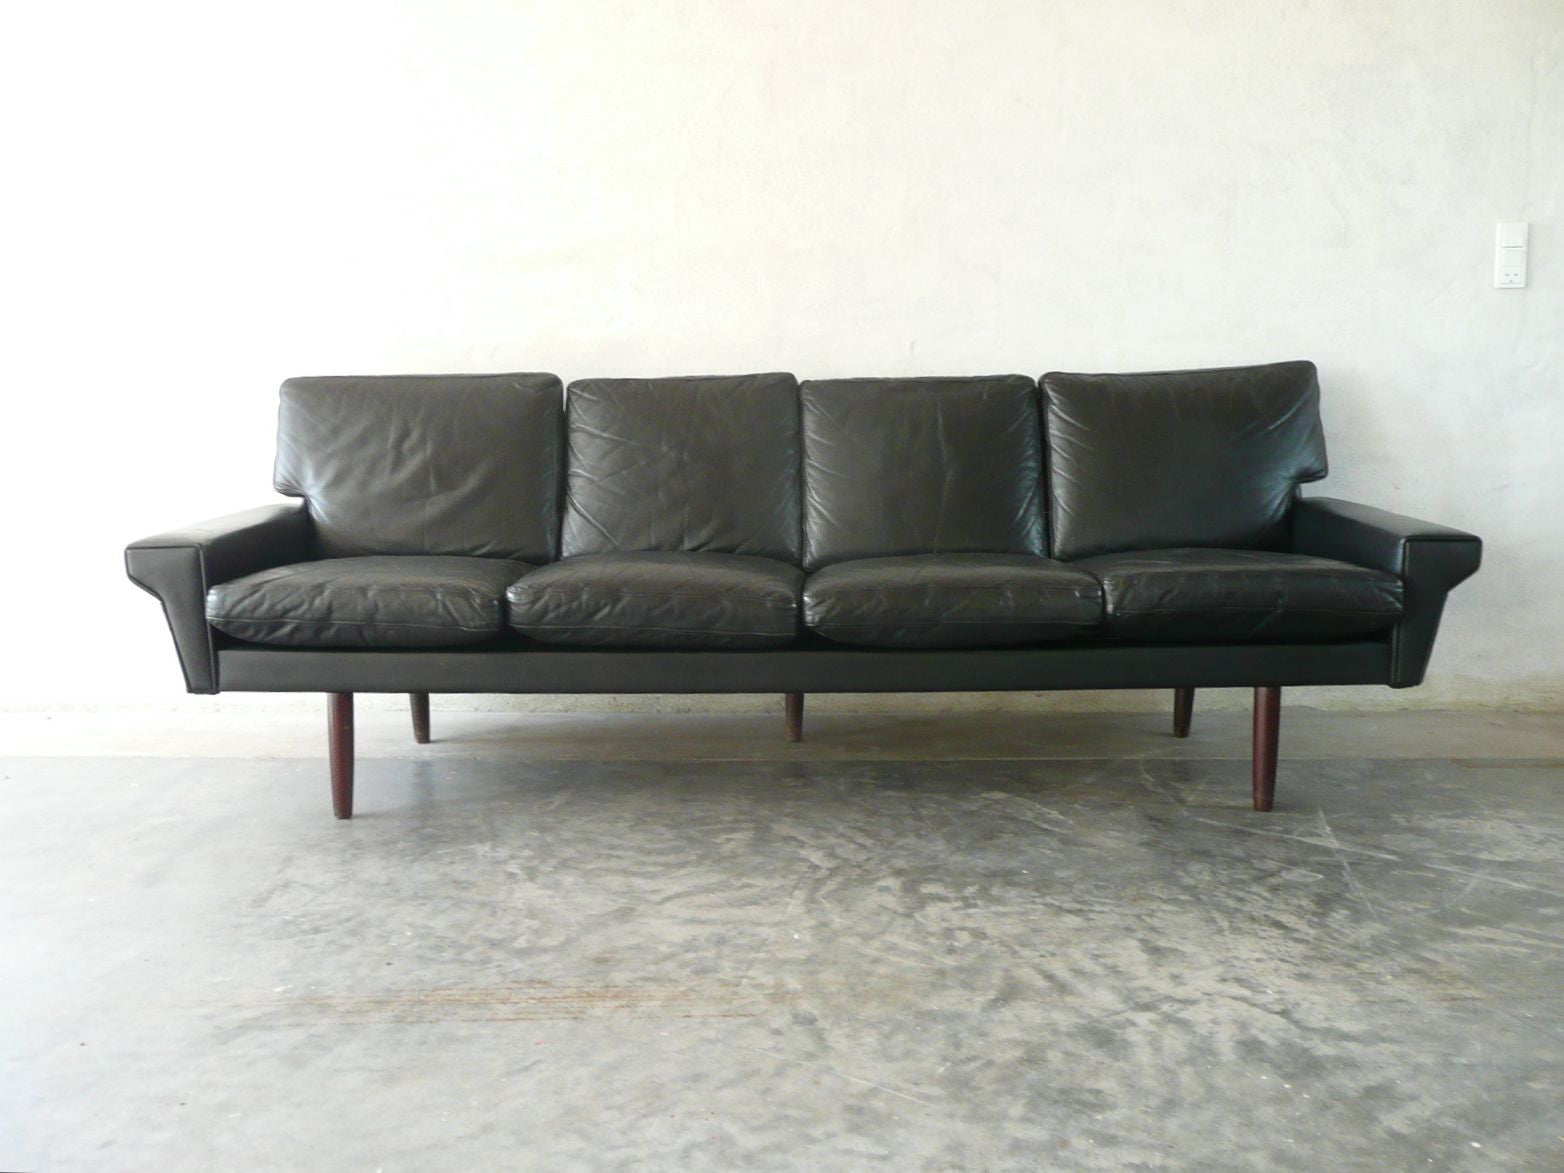 Four seat leather sofa